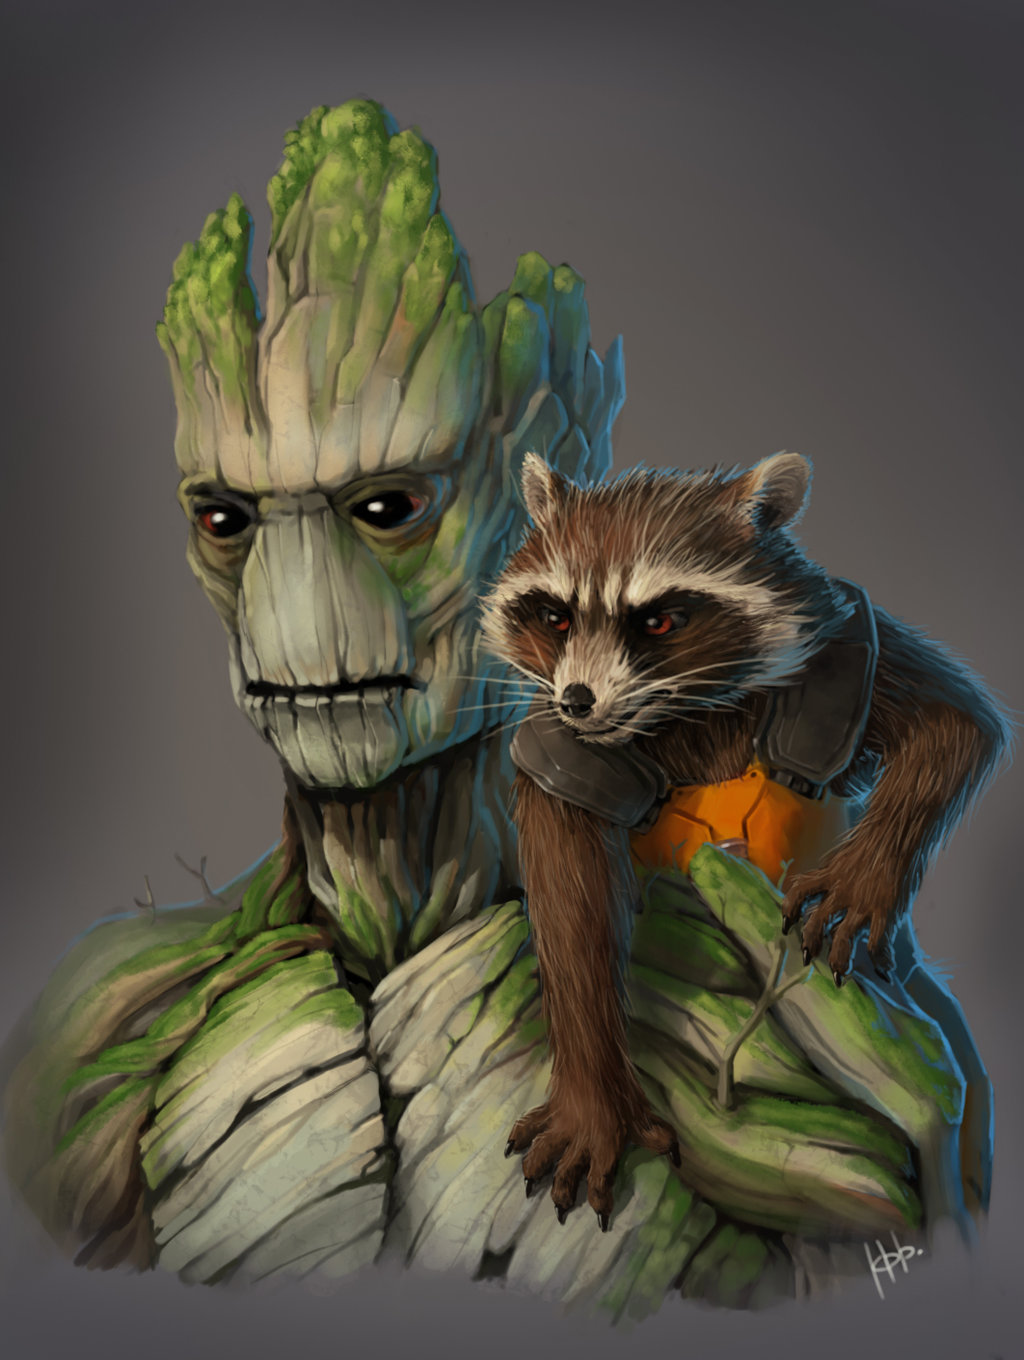 Drawn raccoon groot Rocket and Racon and Rocket